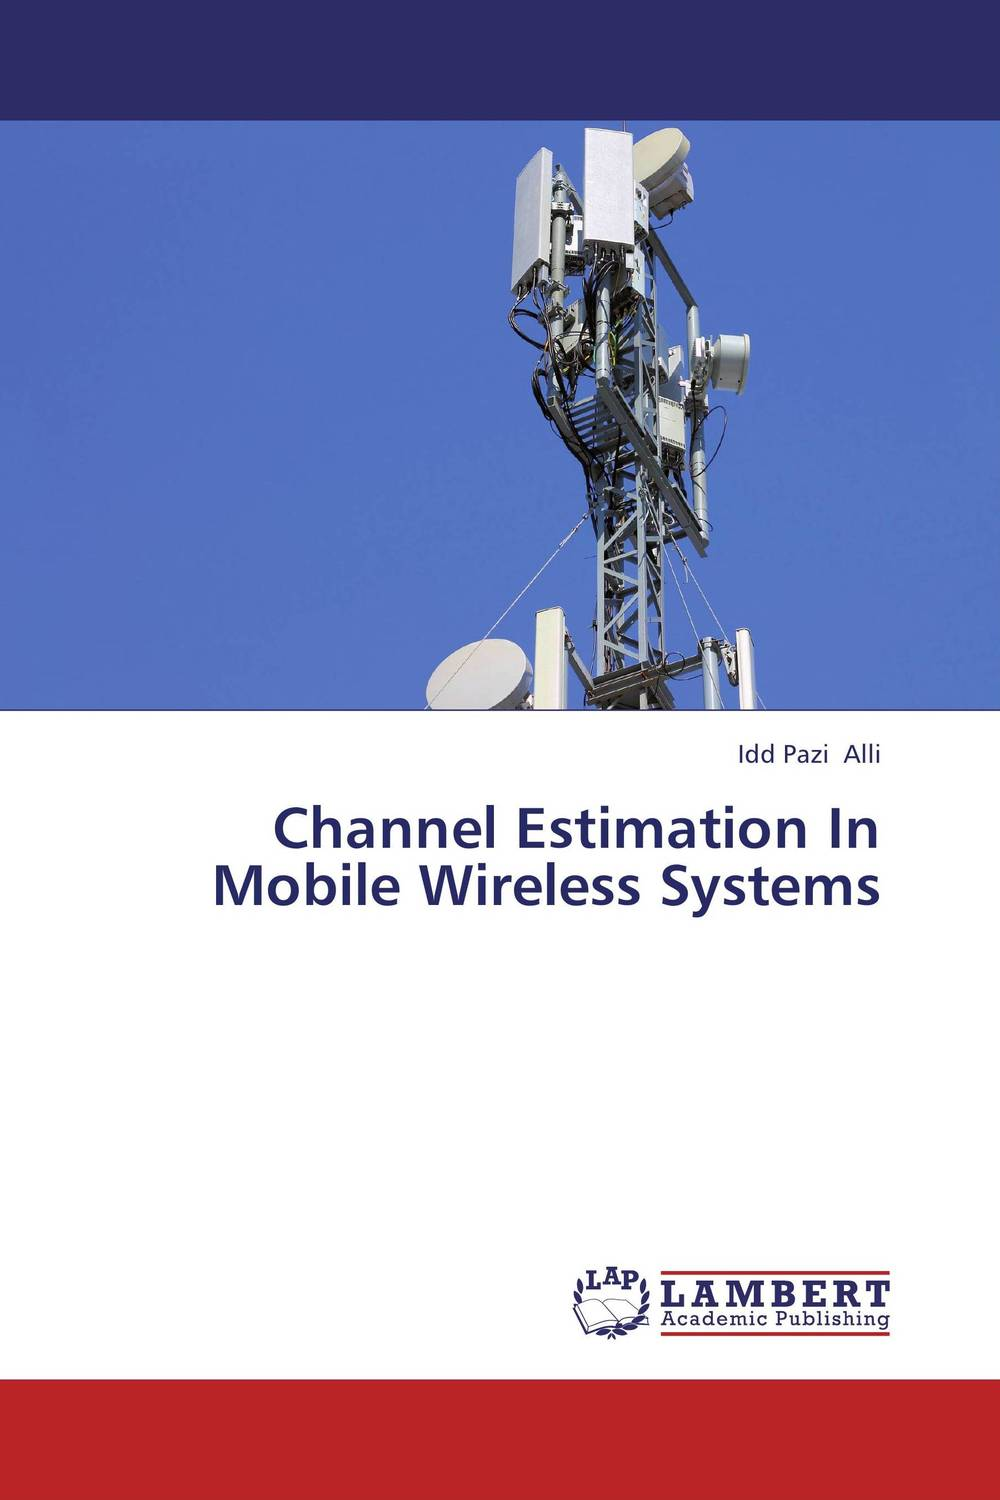 Channel Estimation In Mobile Wireless Systems